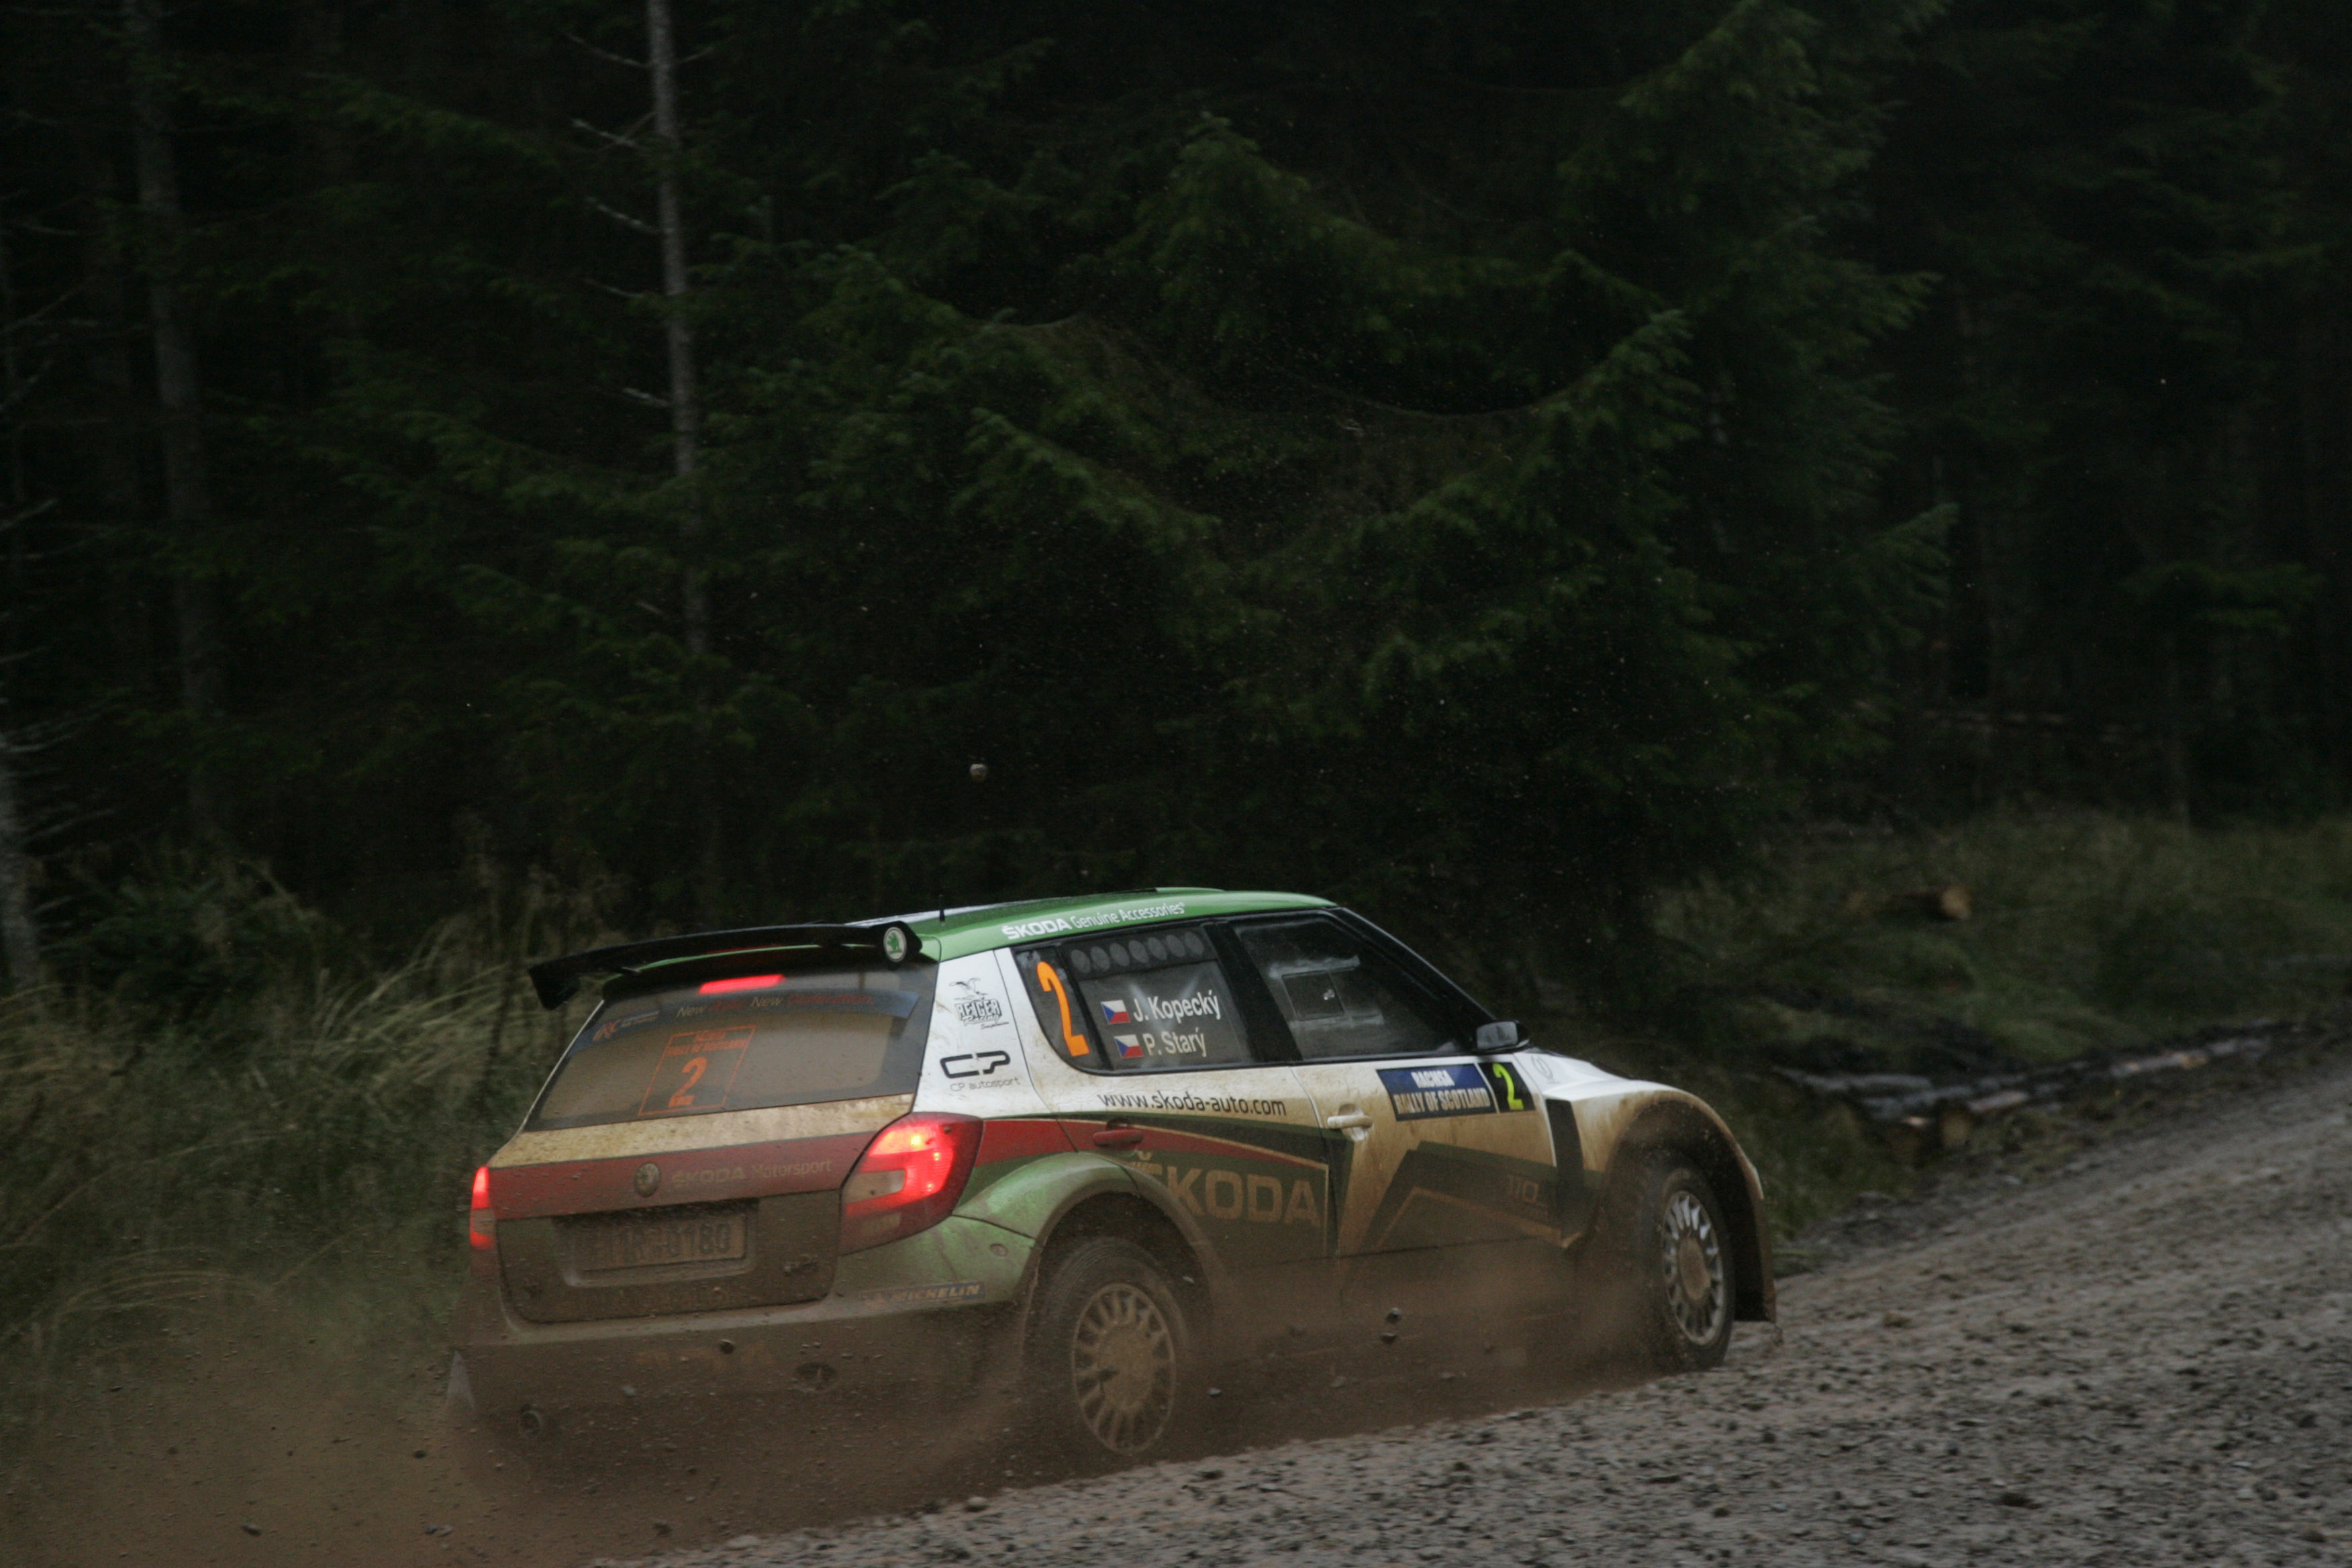 Rally of Scotland, Perth (Scotland) 06-09 10 2011